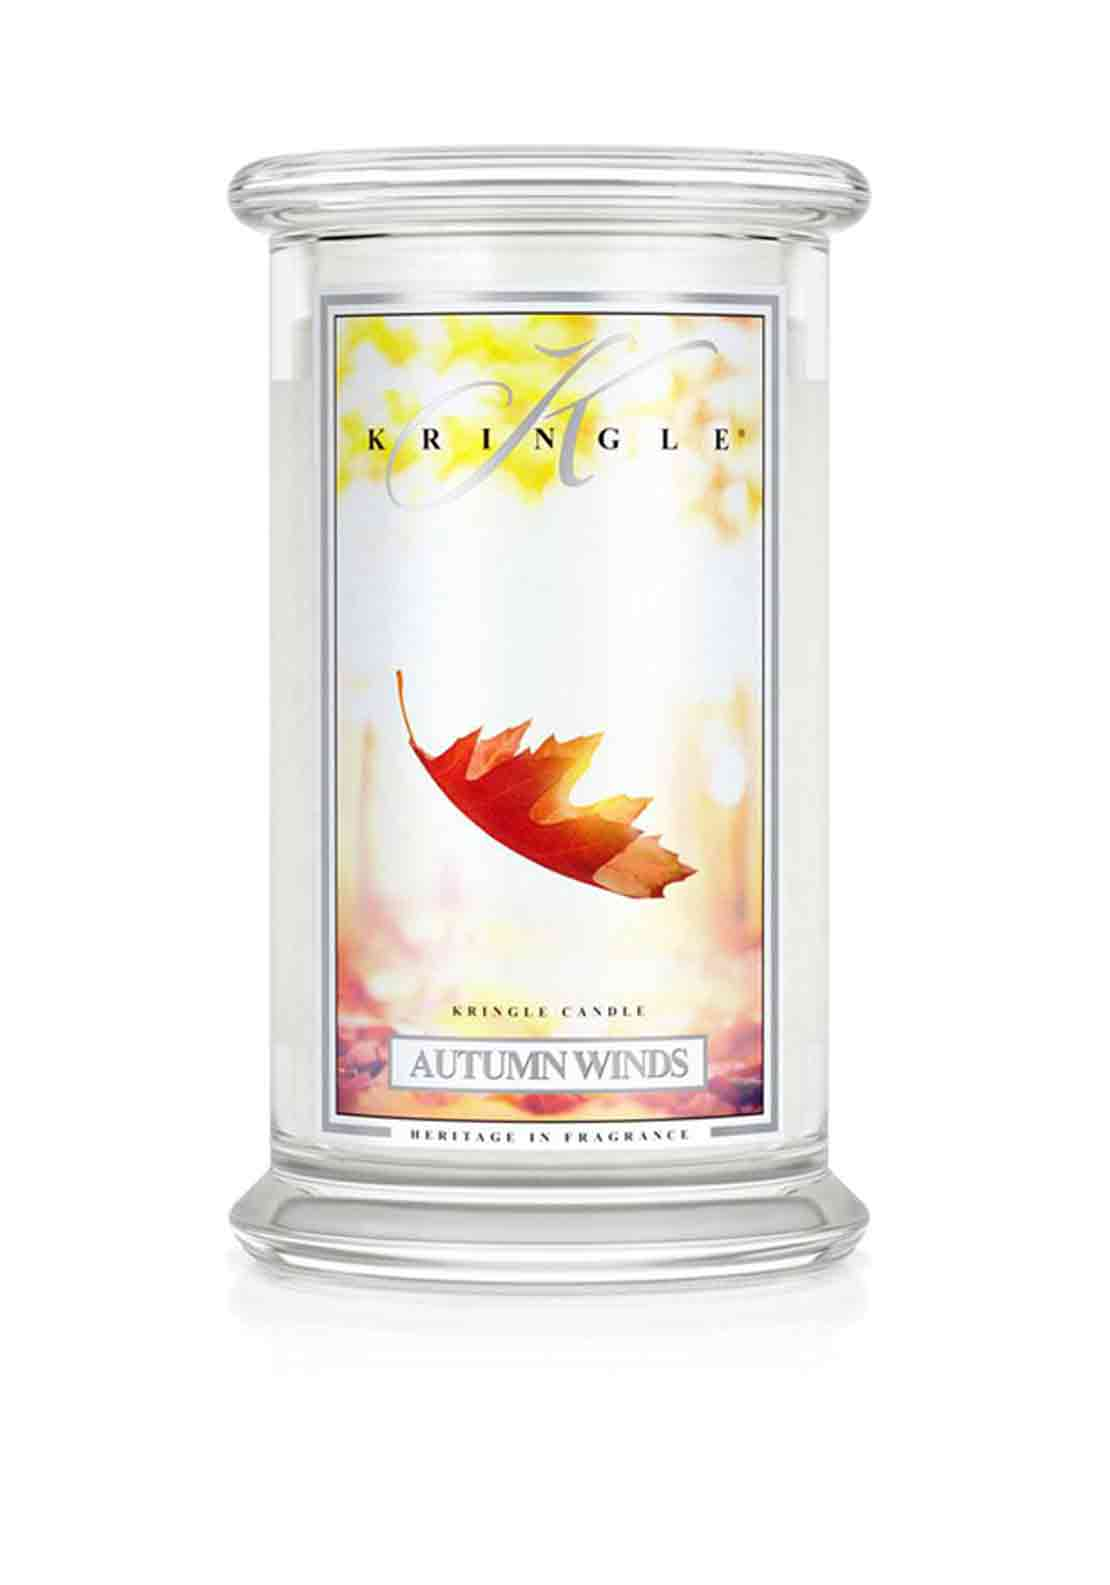 Kringle Candle Autumn Winds Large Two Wick Scented Candle Jar